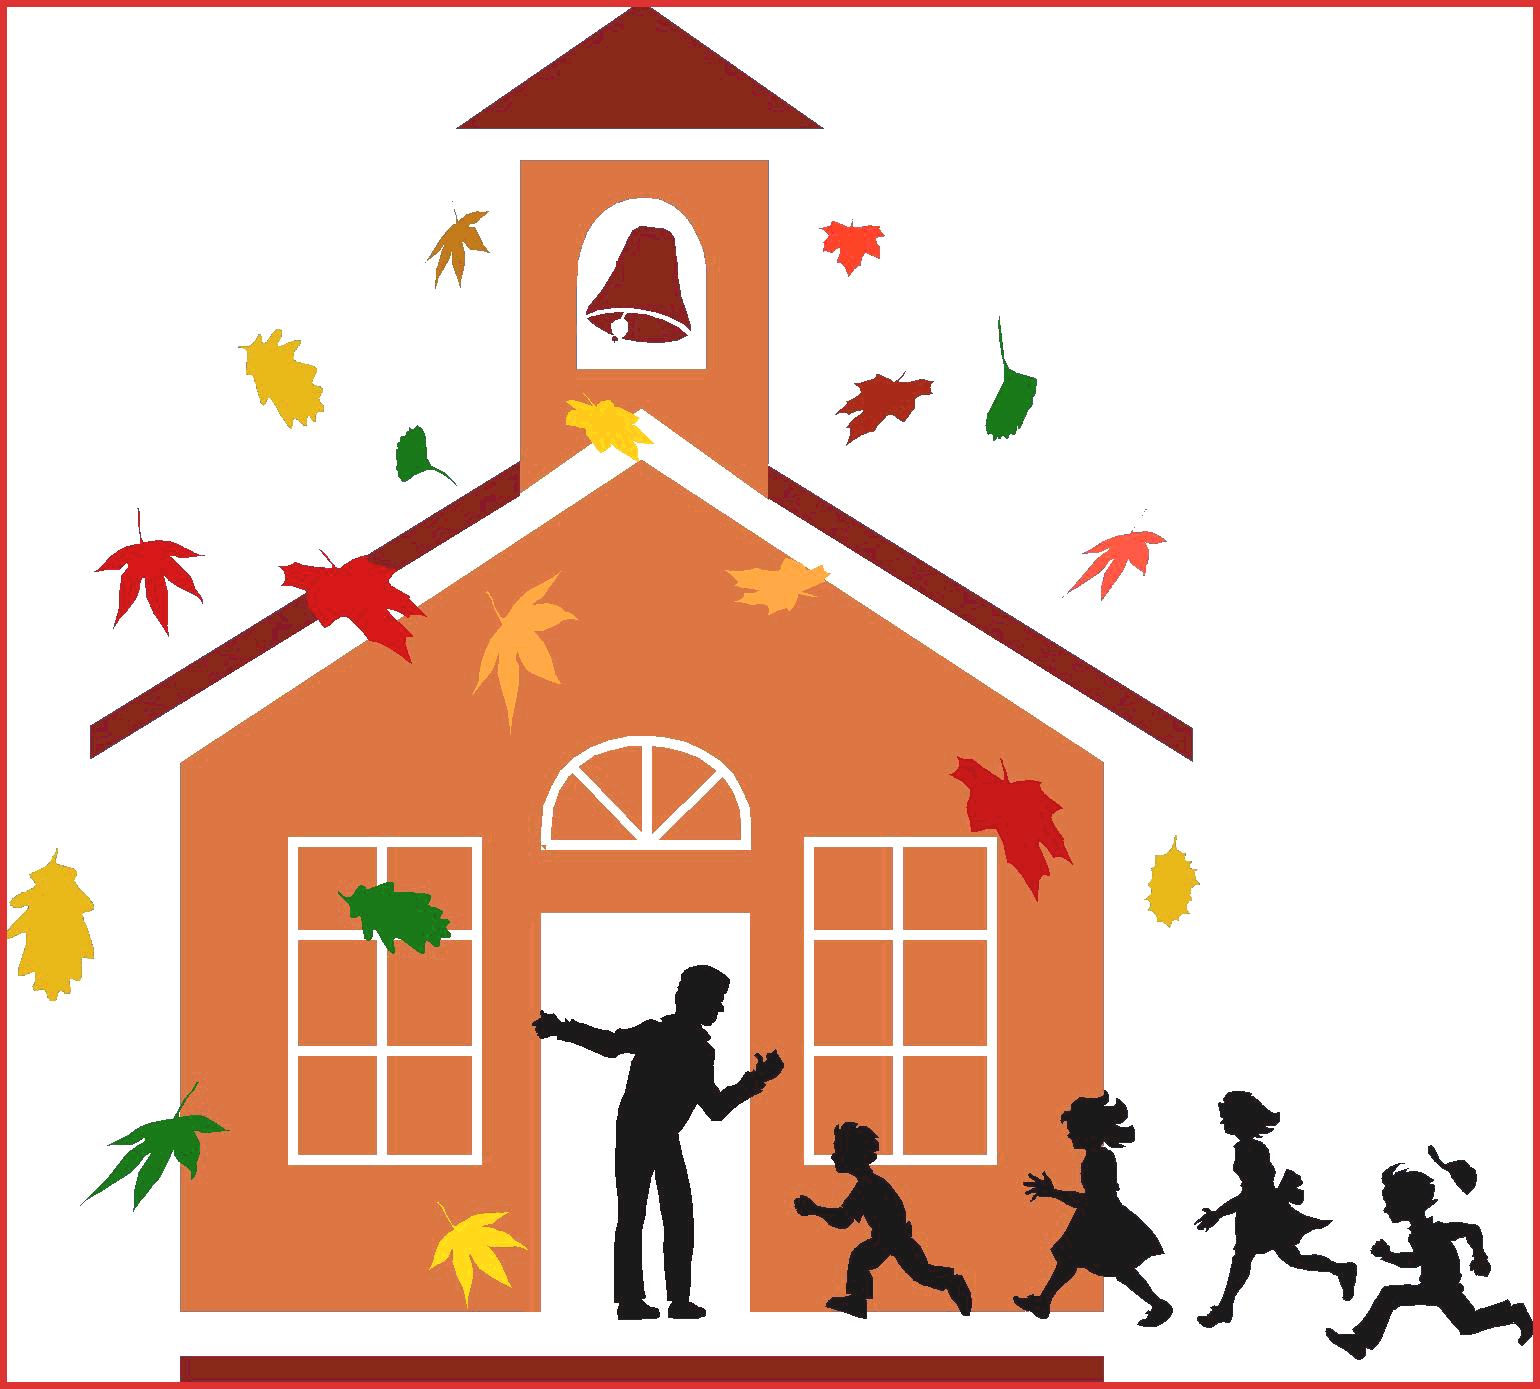 Old fashioned school house clipart banner freeuse stock Unique School House Clipart | cobble usa banner freeuse stock